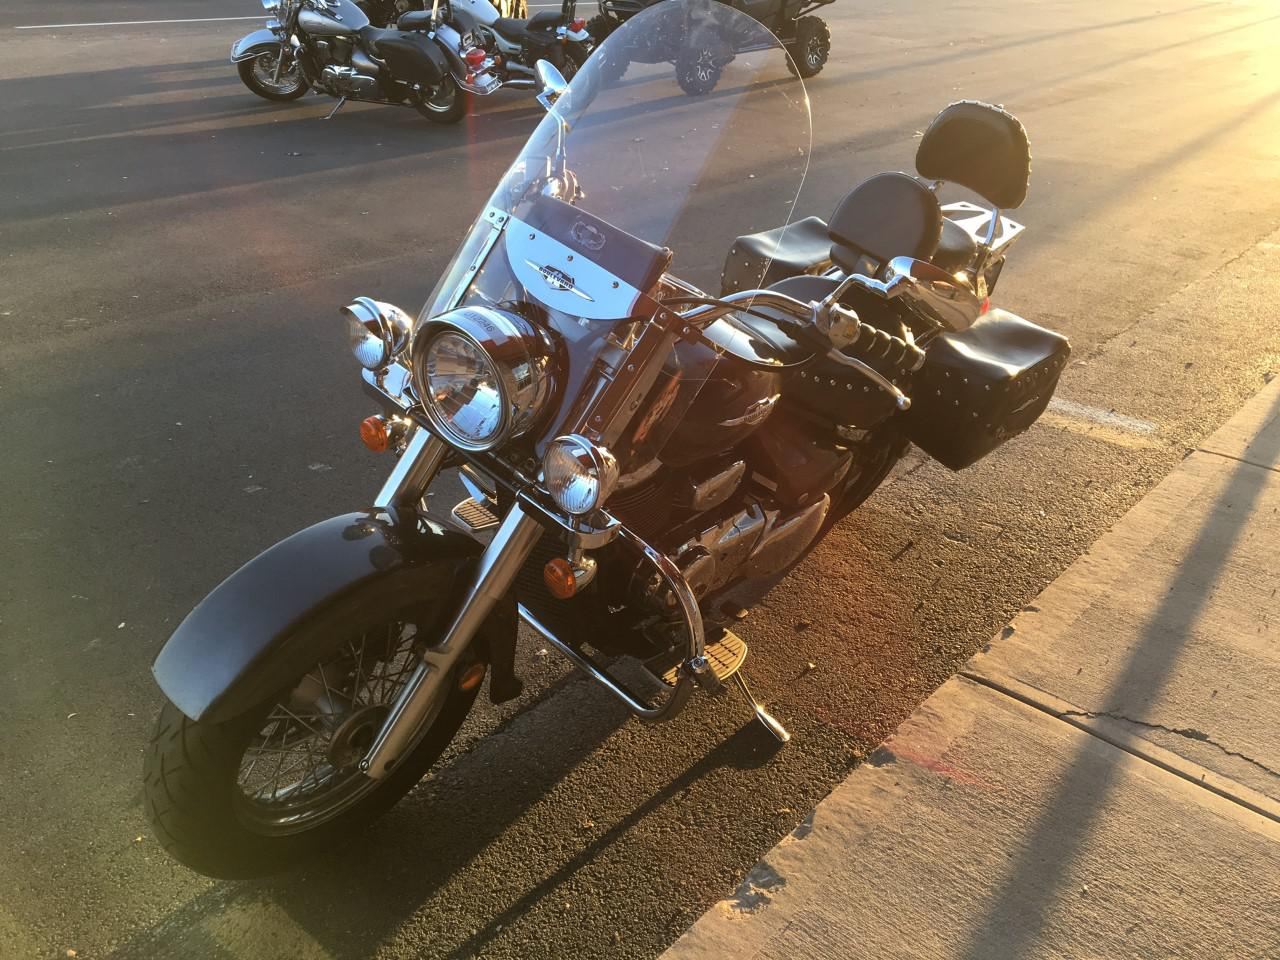 2006 suzuki boulevard c50t for sale in indianapolis, in | dreyer